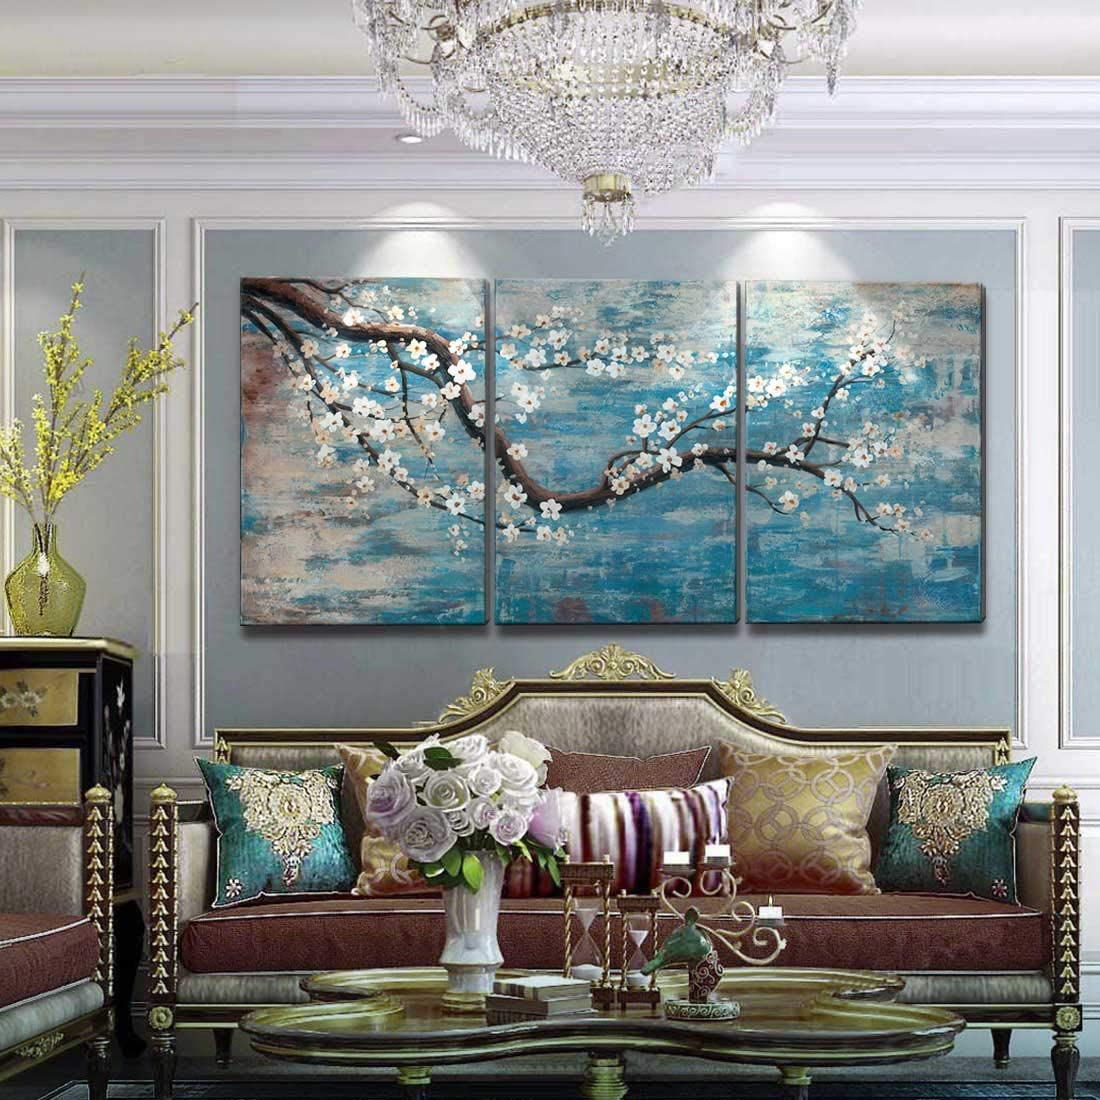 Extra Large Wall Art for Living Room 100 Hand-Painted Framed Decorative Floral Oil Painting Set Decorative Modern Blue Tree Artwork Ready to Hang 72 x36